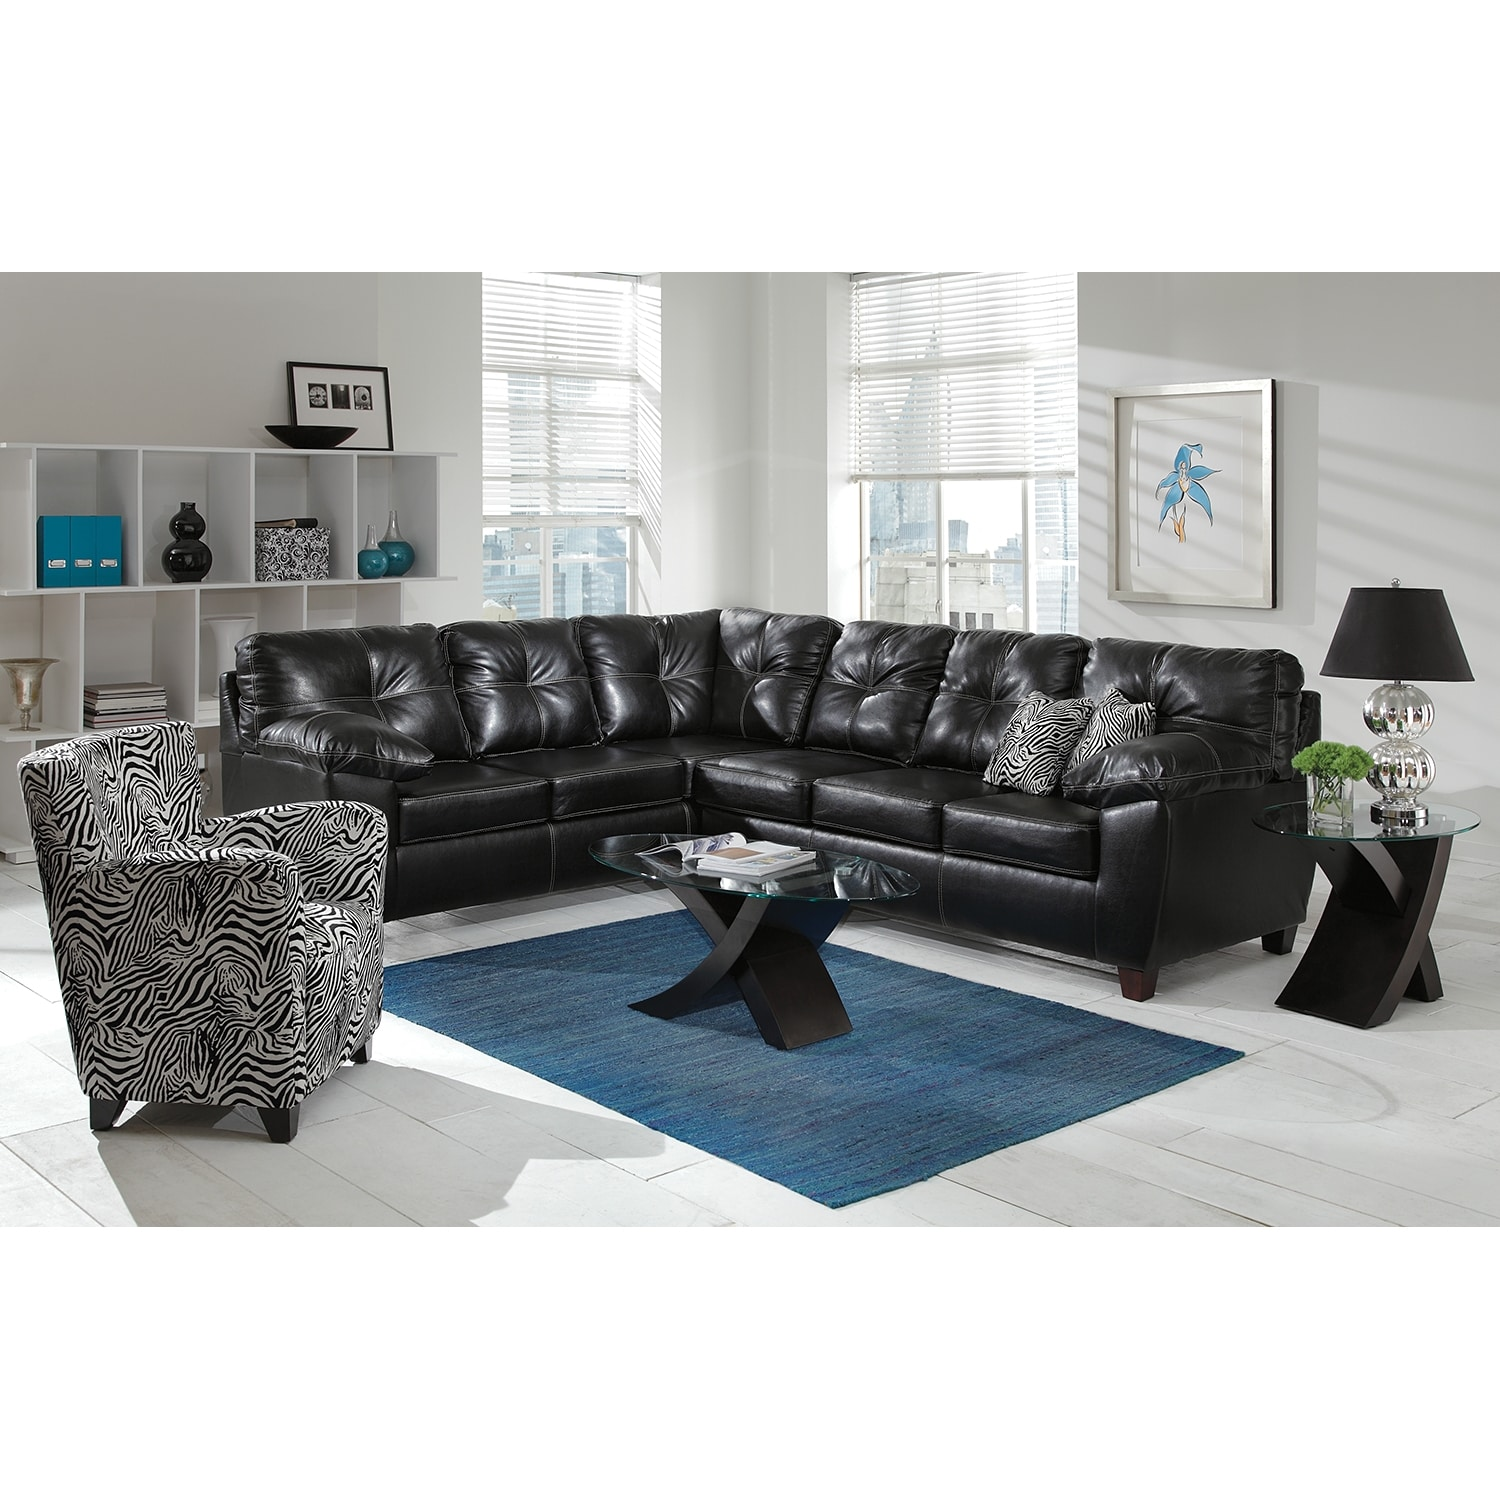 Ricardo 2 Piece Memory Foam Sleeper Sectional with Left Facing